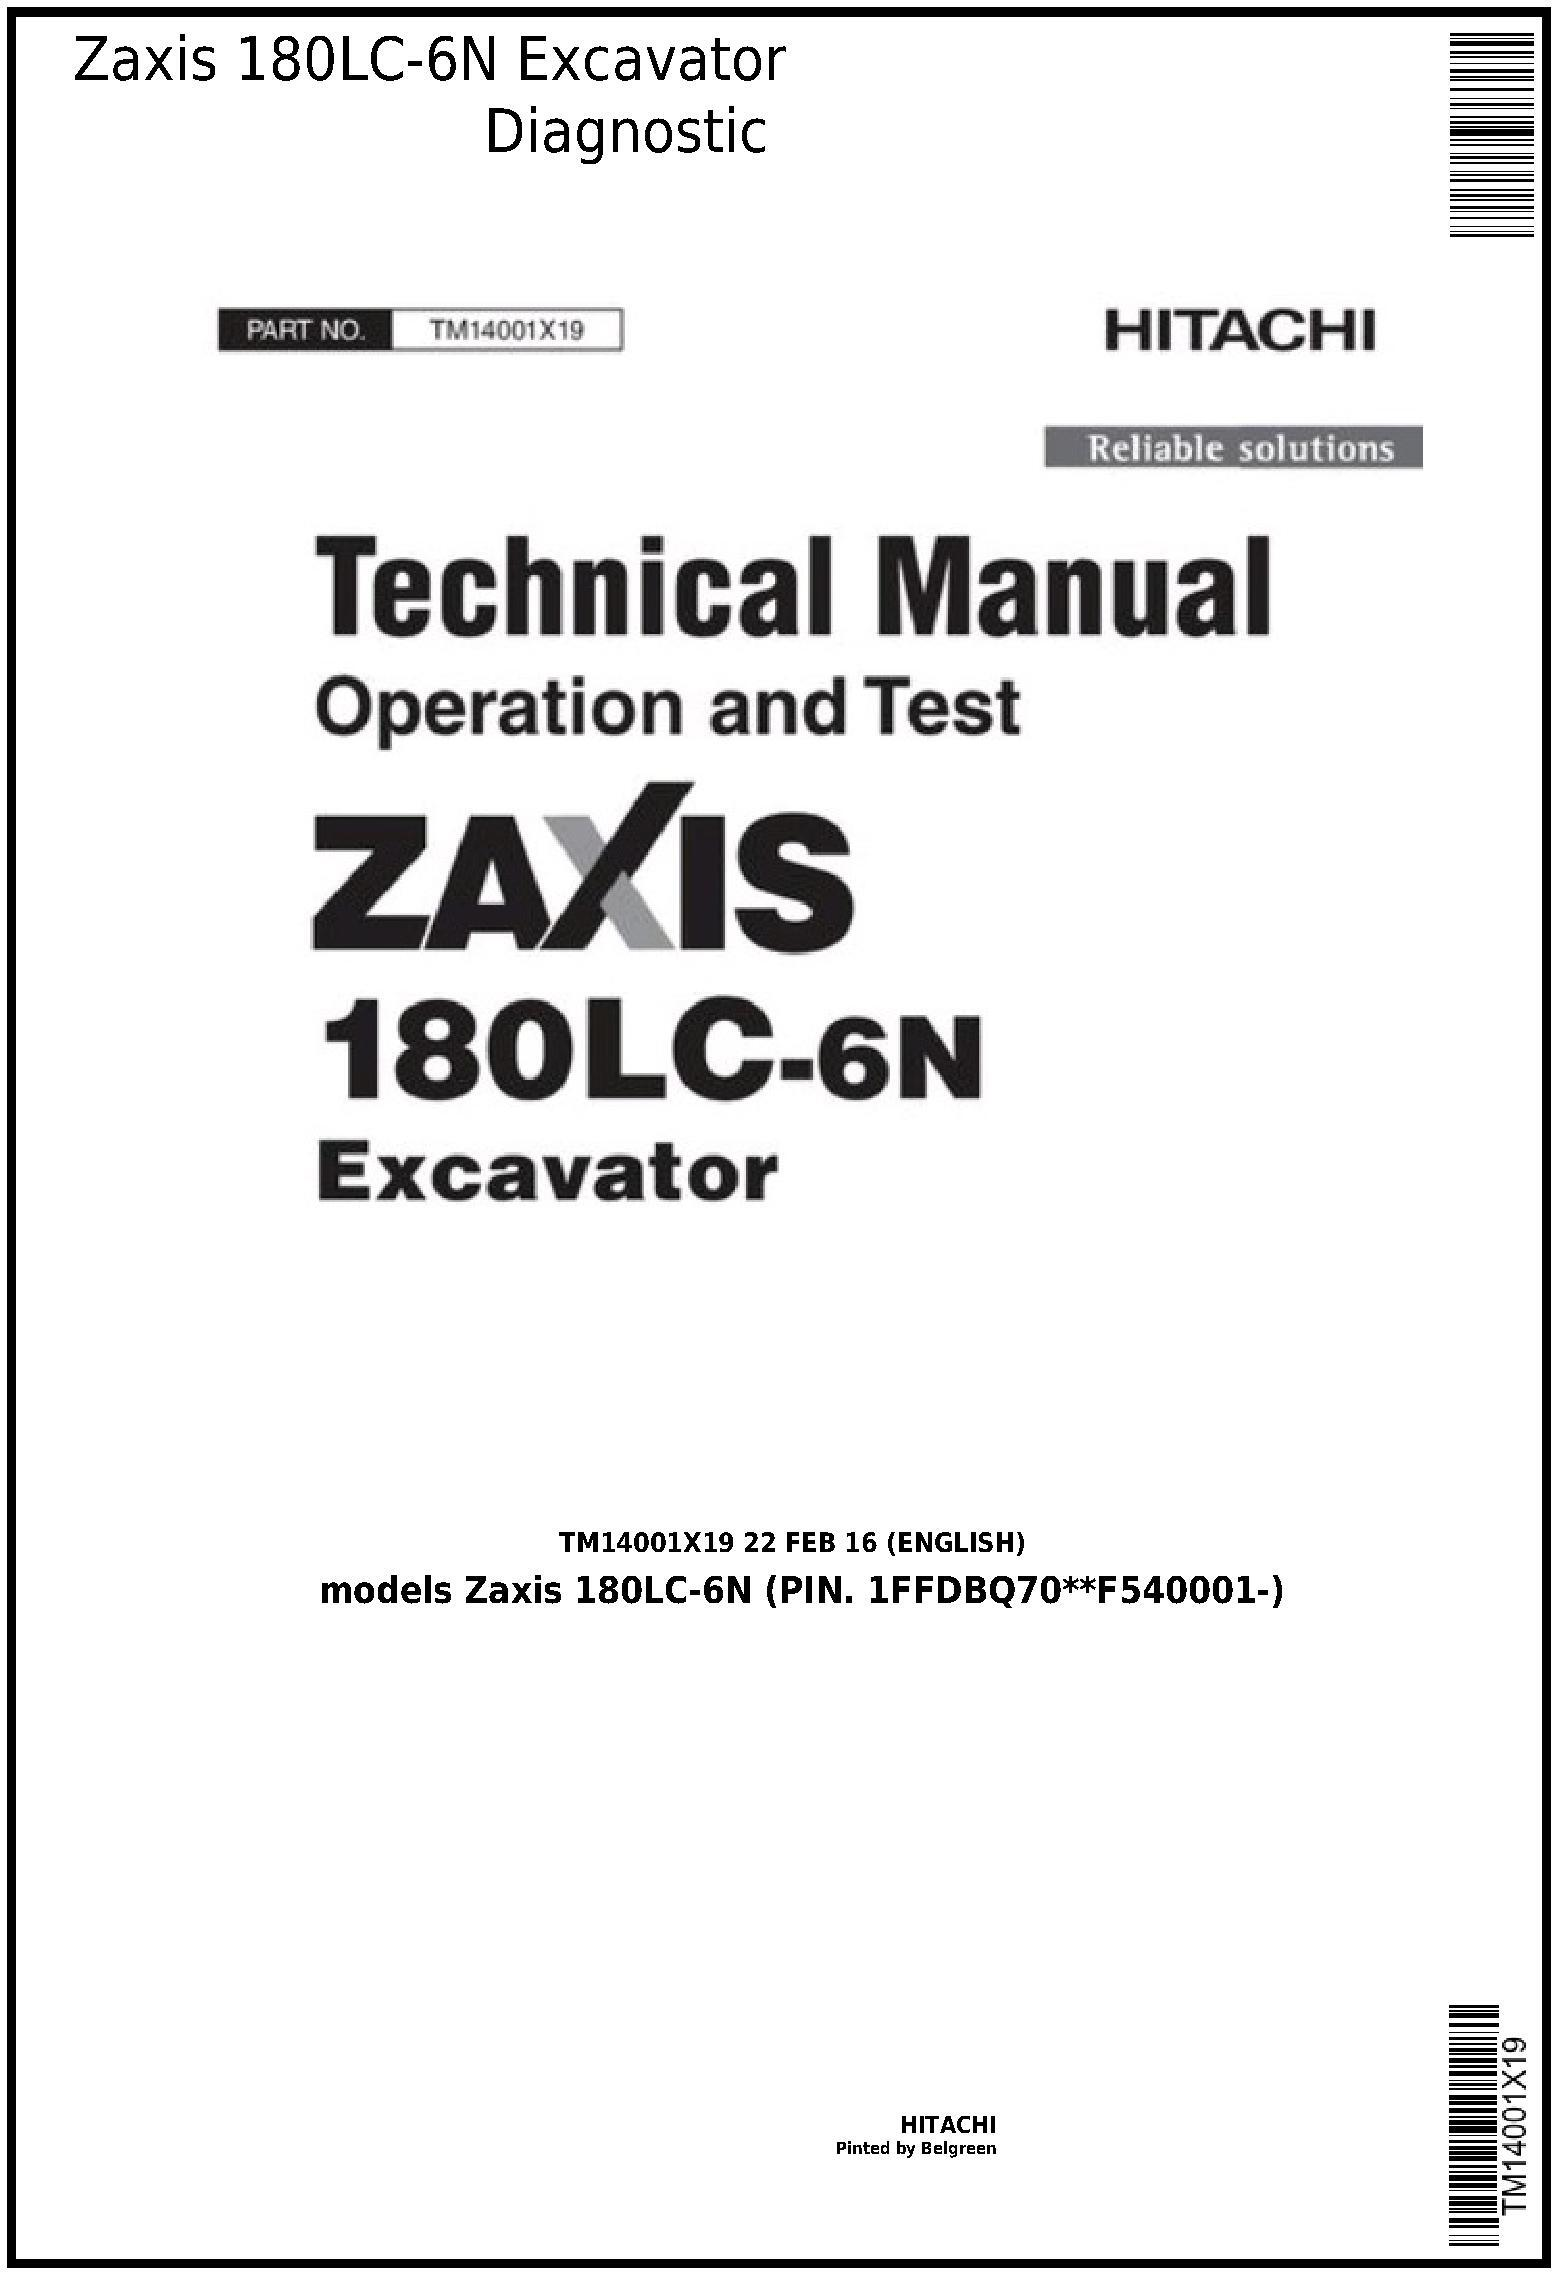 Hitachi Zaxis 180LC-6N Excavator Diagnostic, Operation and